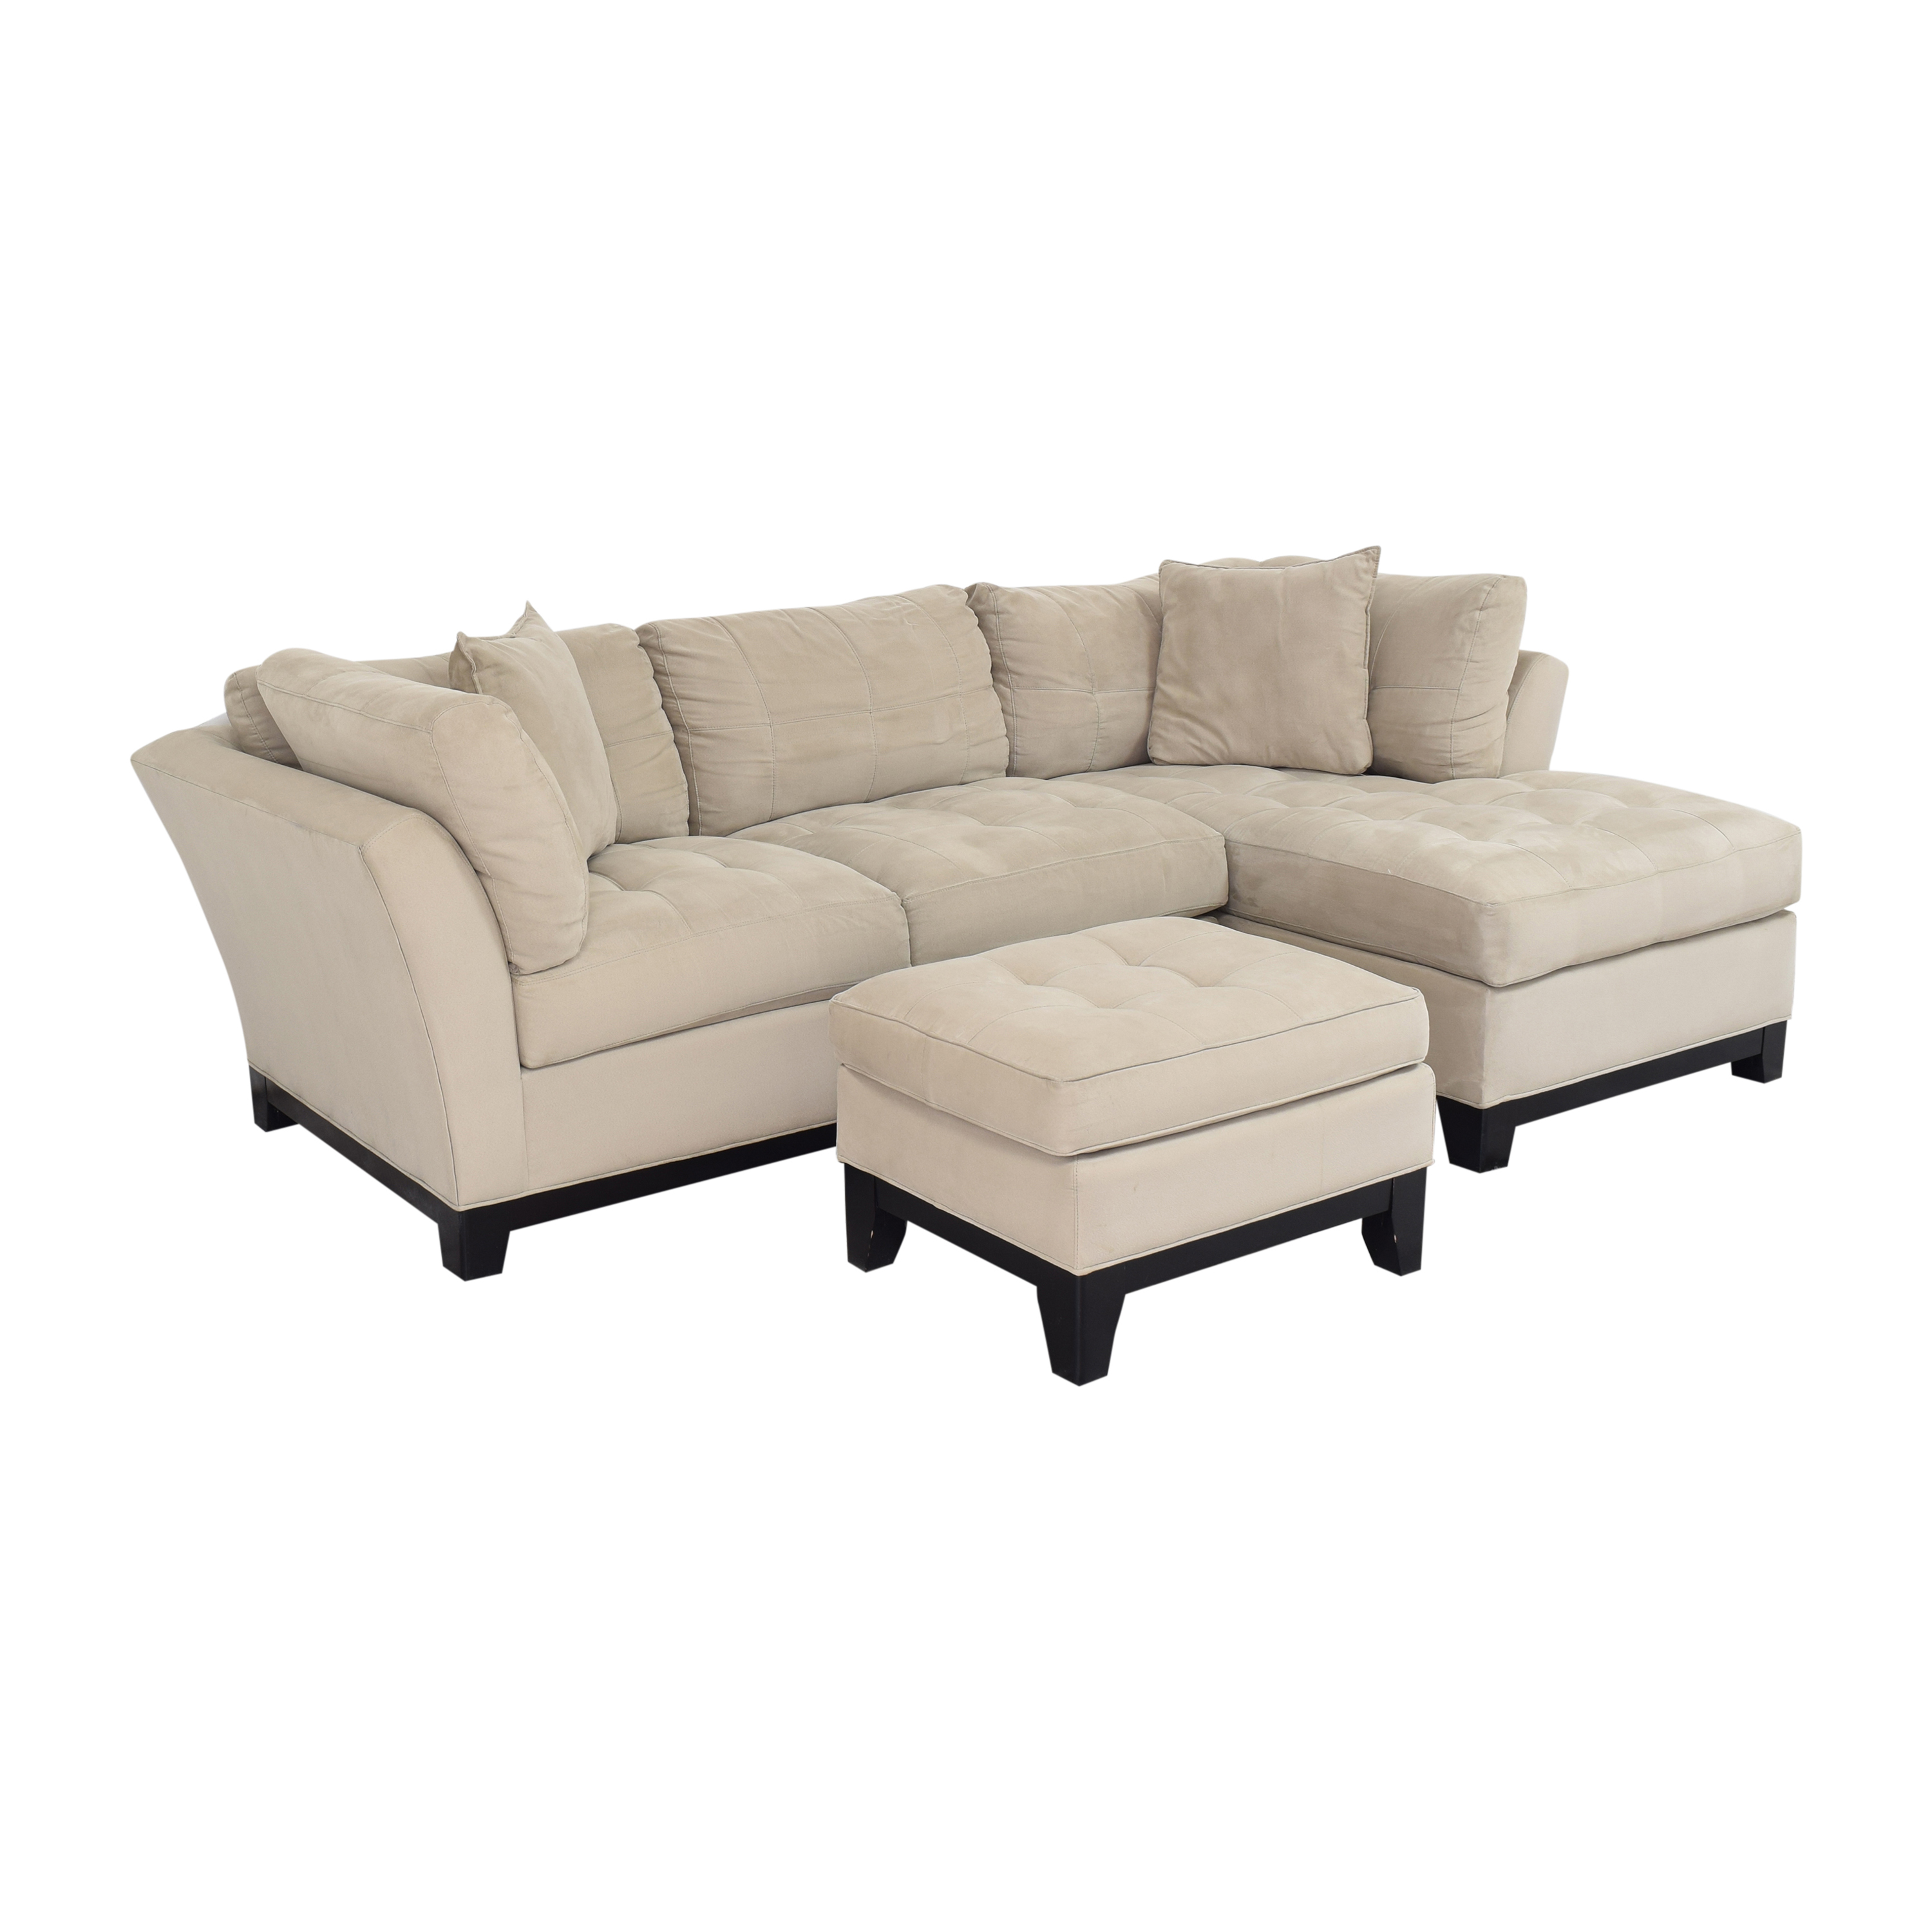 Cindy Crawford Home Metropolis Sectional Sofa / Sectionals